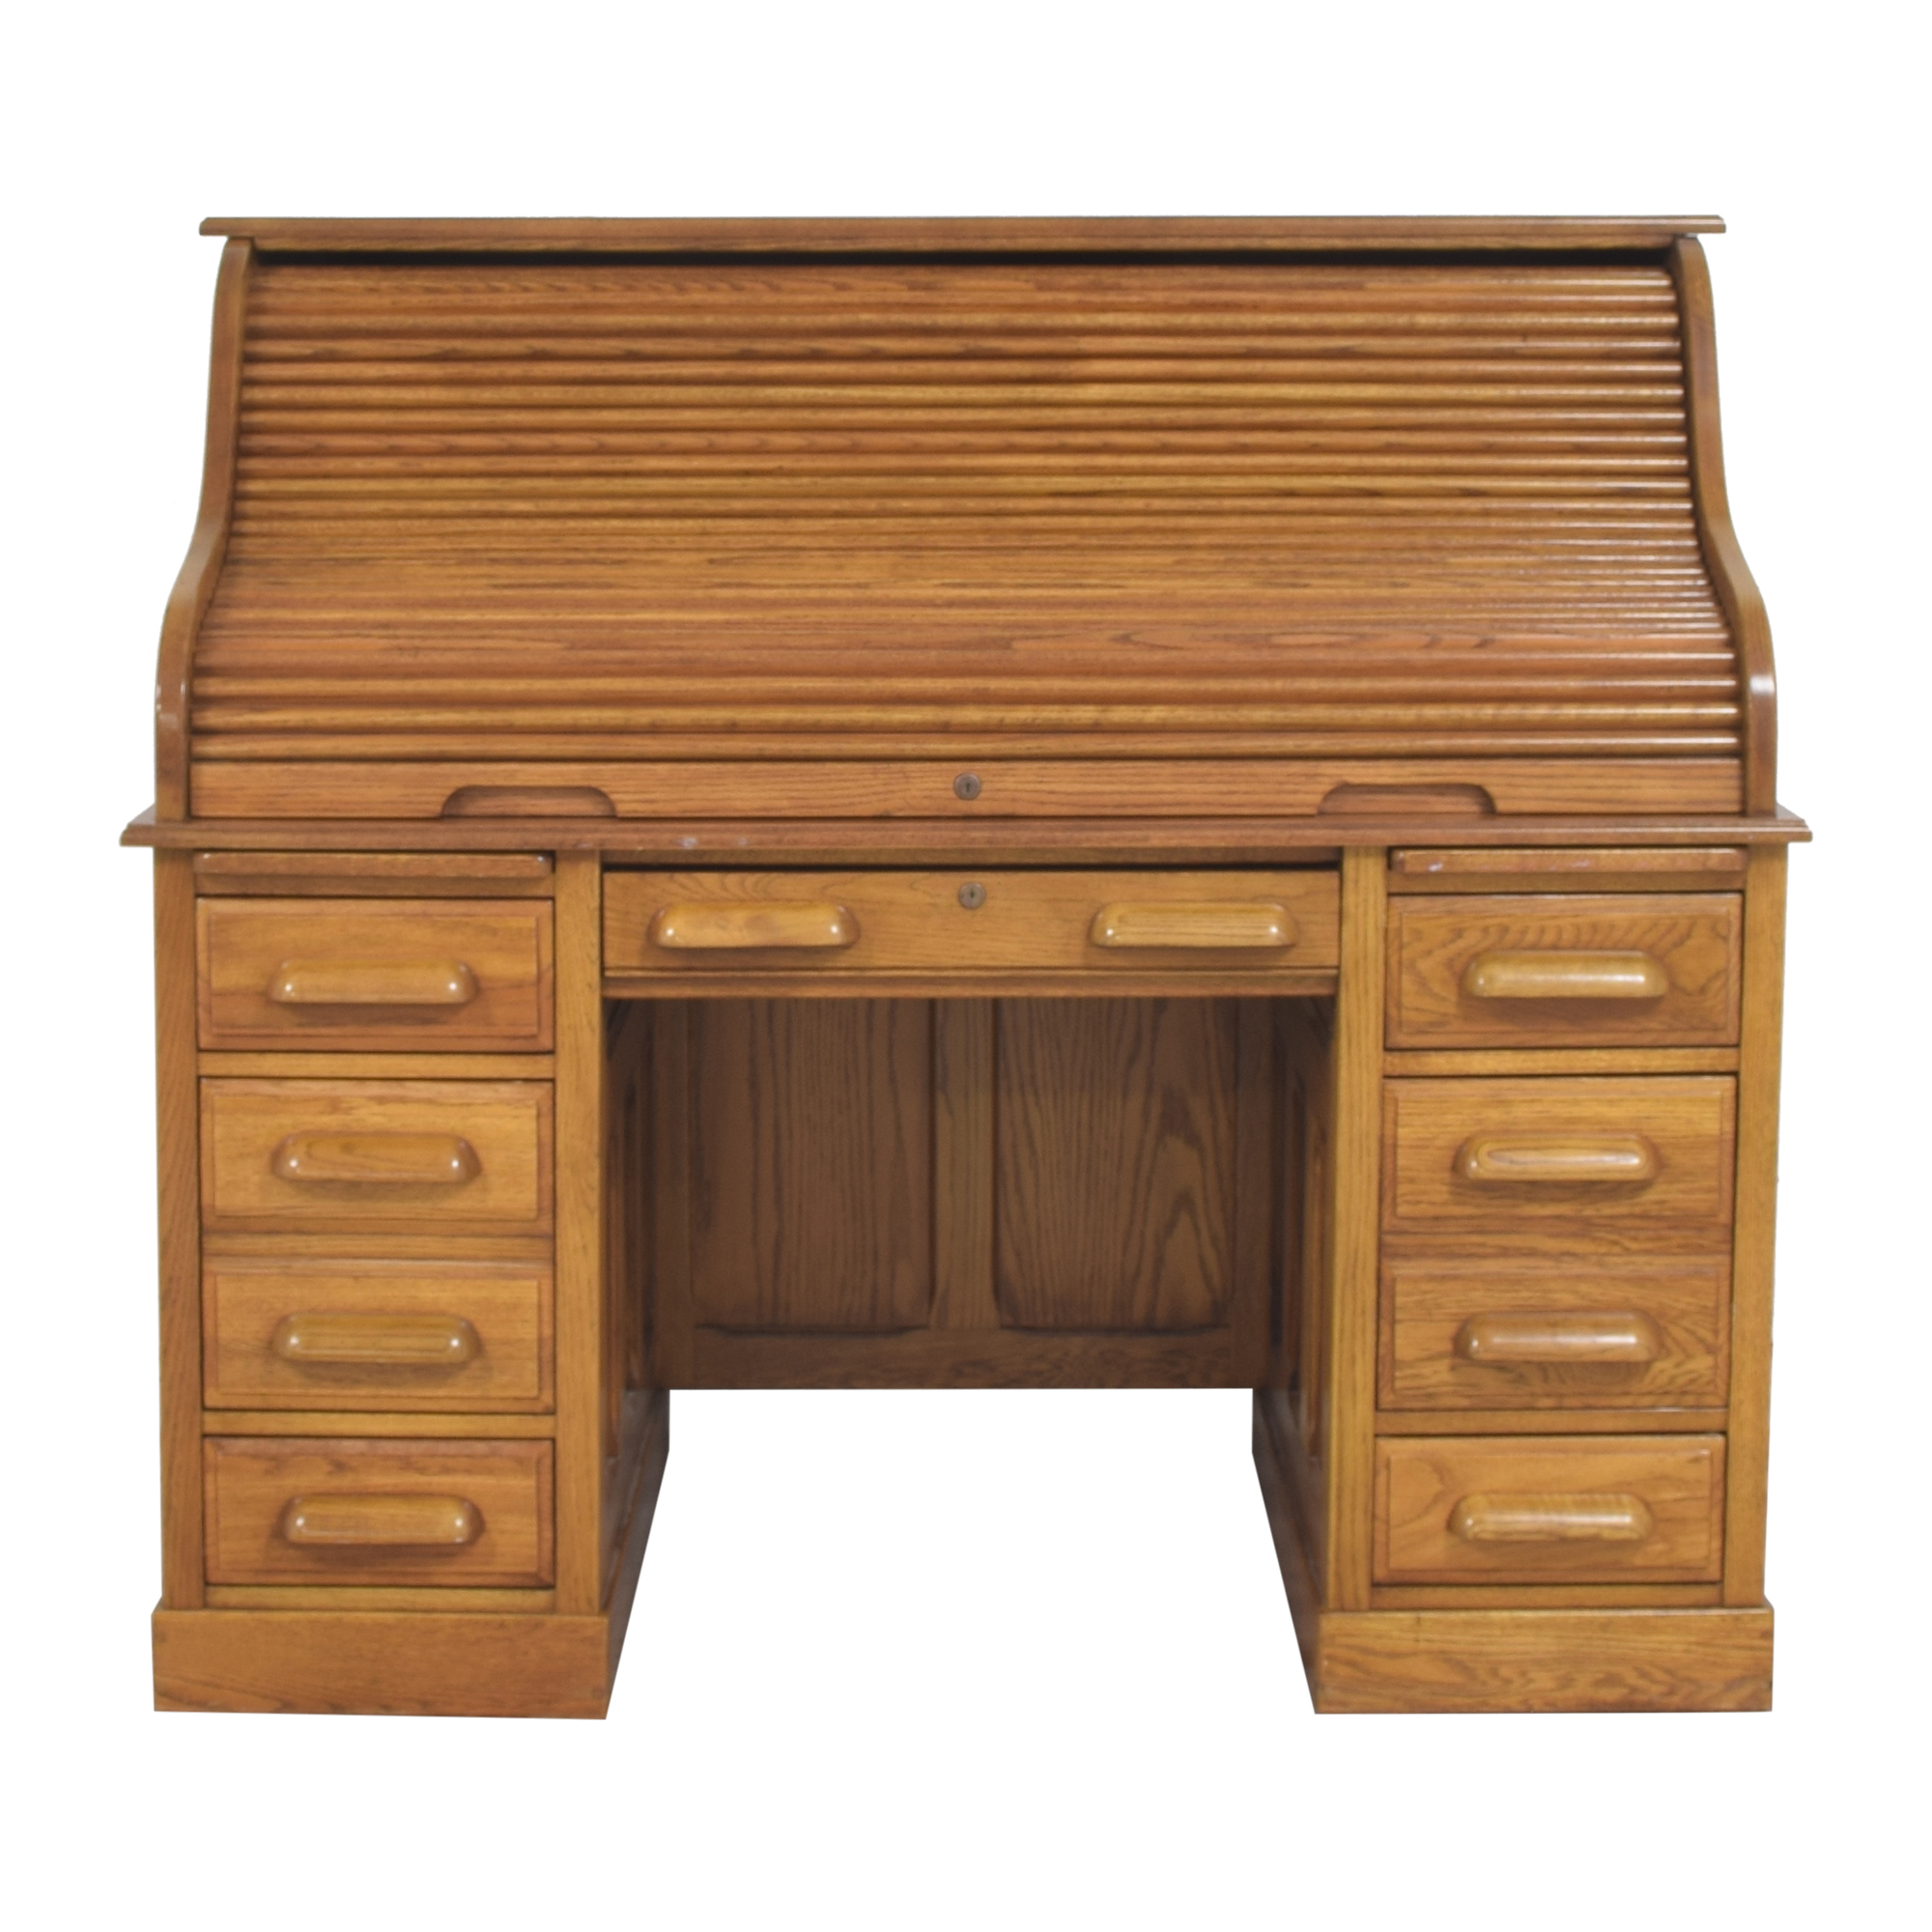 Mount Airy National Mount Airy Roll Top Desk nj